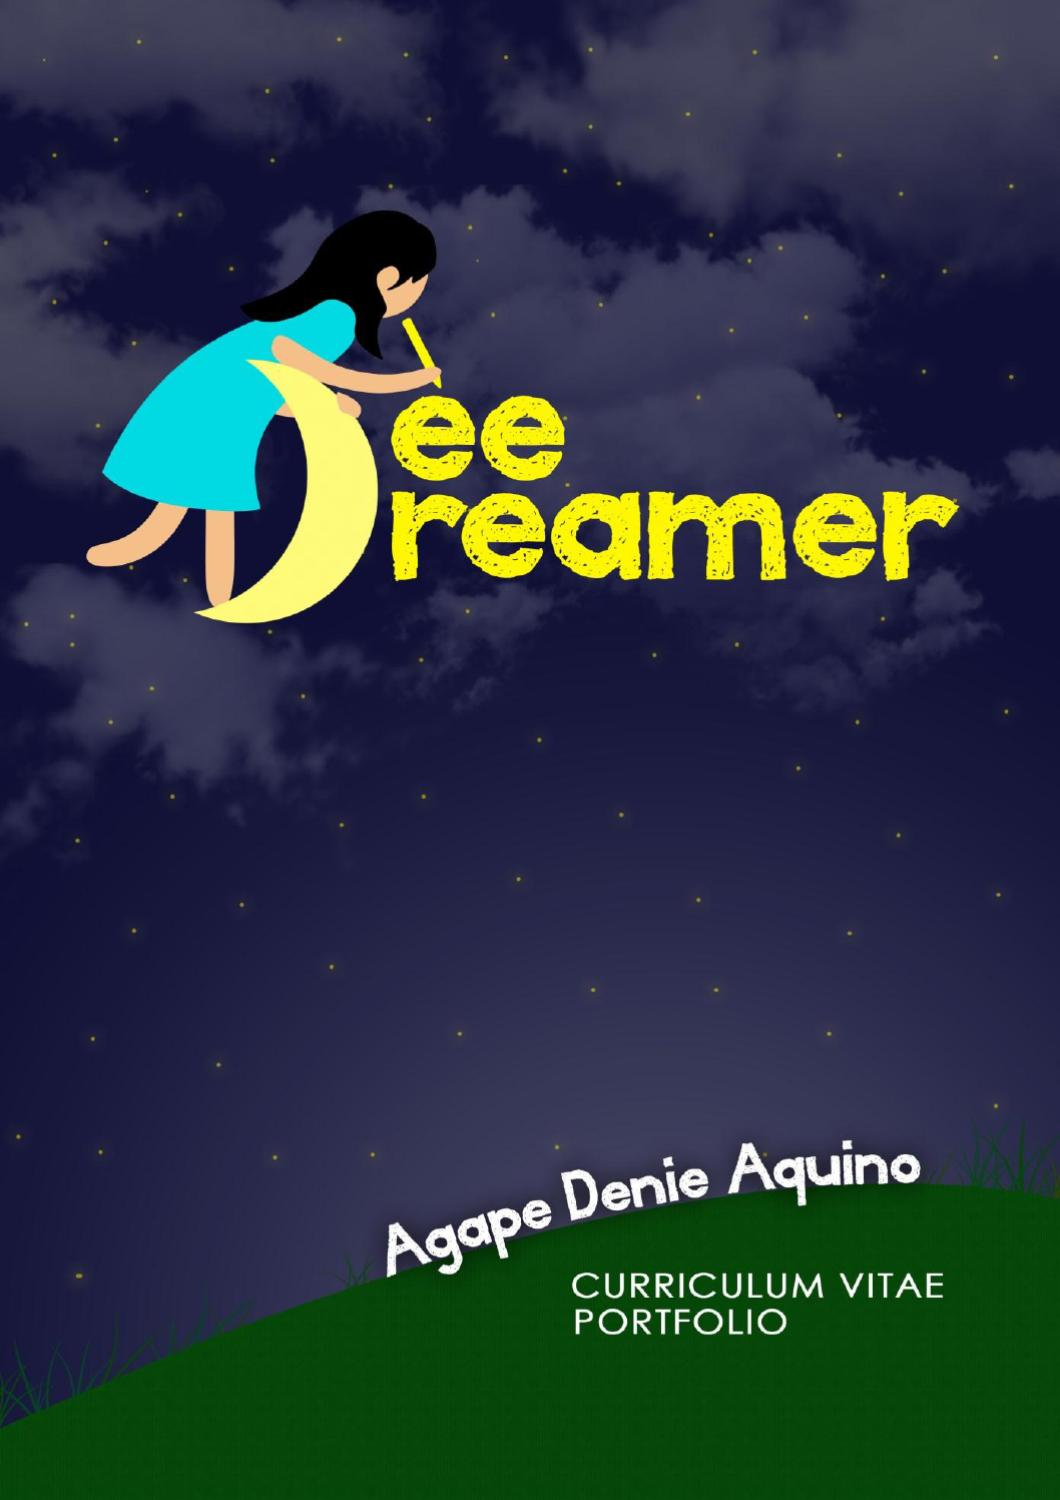 agape denie aquino cv and portfolio by agape denie aquino